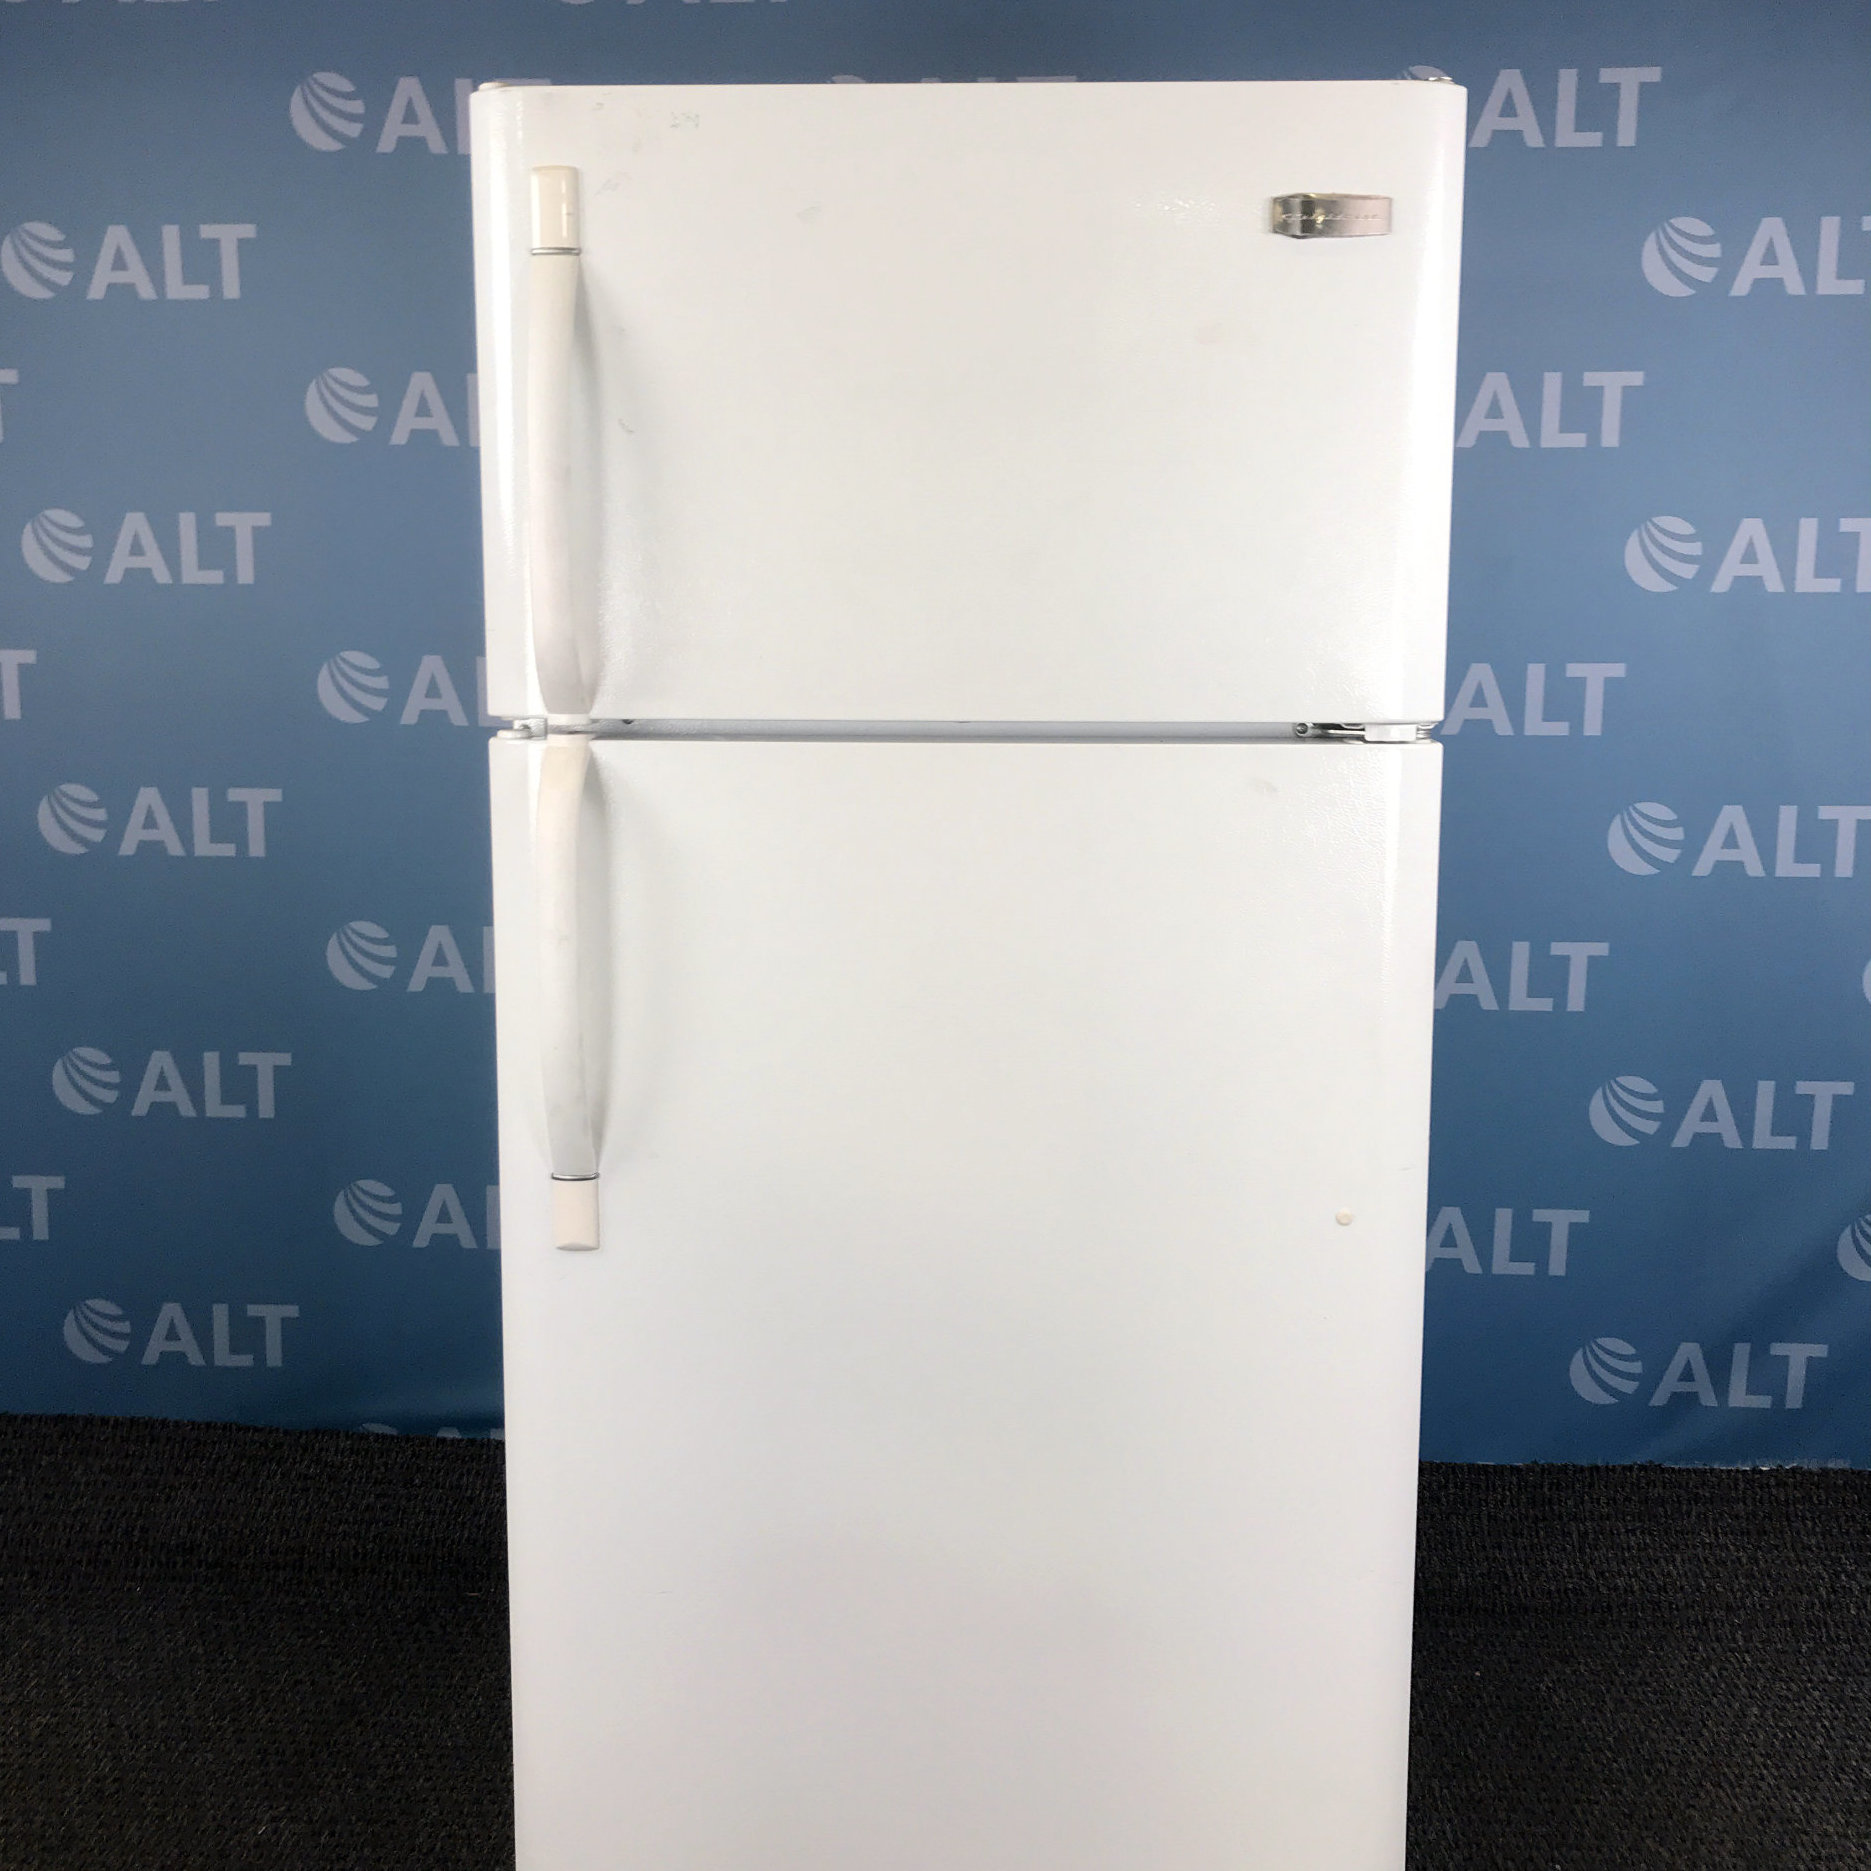 FRT18L4JW1 General Purpose Refrigerator/Freezer  Name